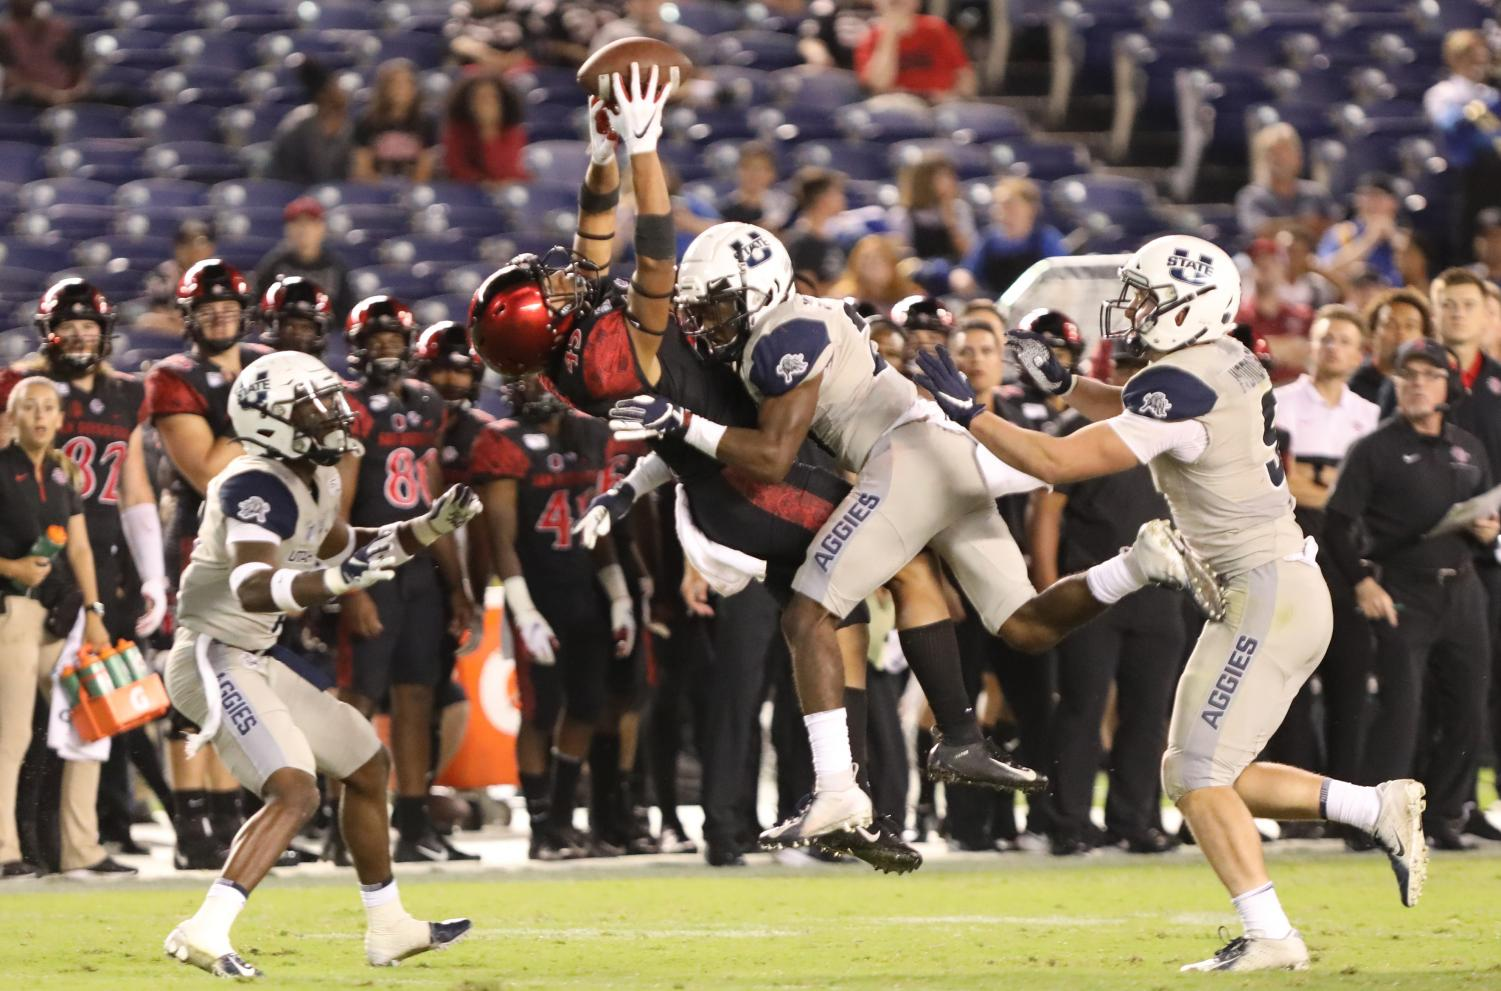 Redshirt freshman wide receiver Jesse Matthews catches a pass over Utah State sophomore cornerback Andre Grayson in the Aztecs' 23-17 loss to Utah State on Sept. 21 at SDCCU Stadium.